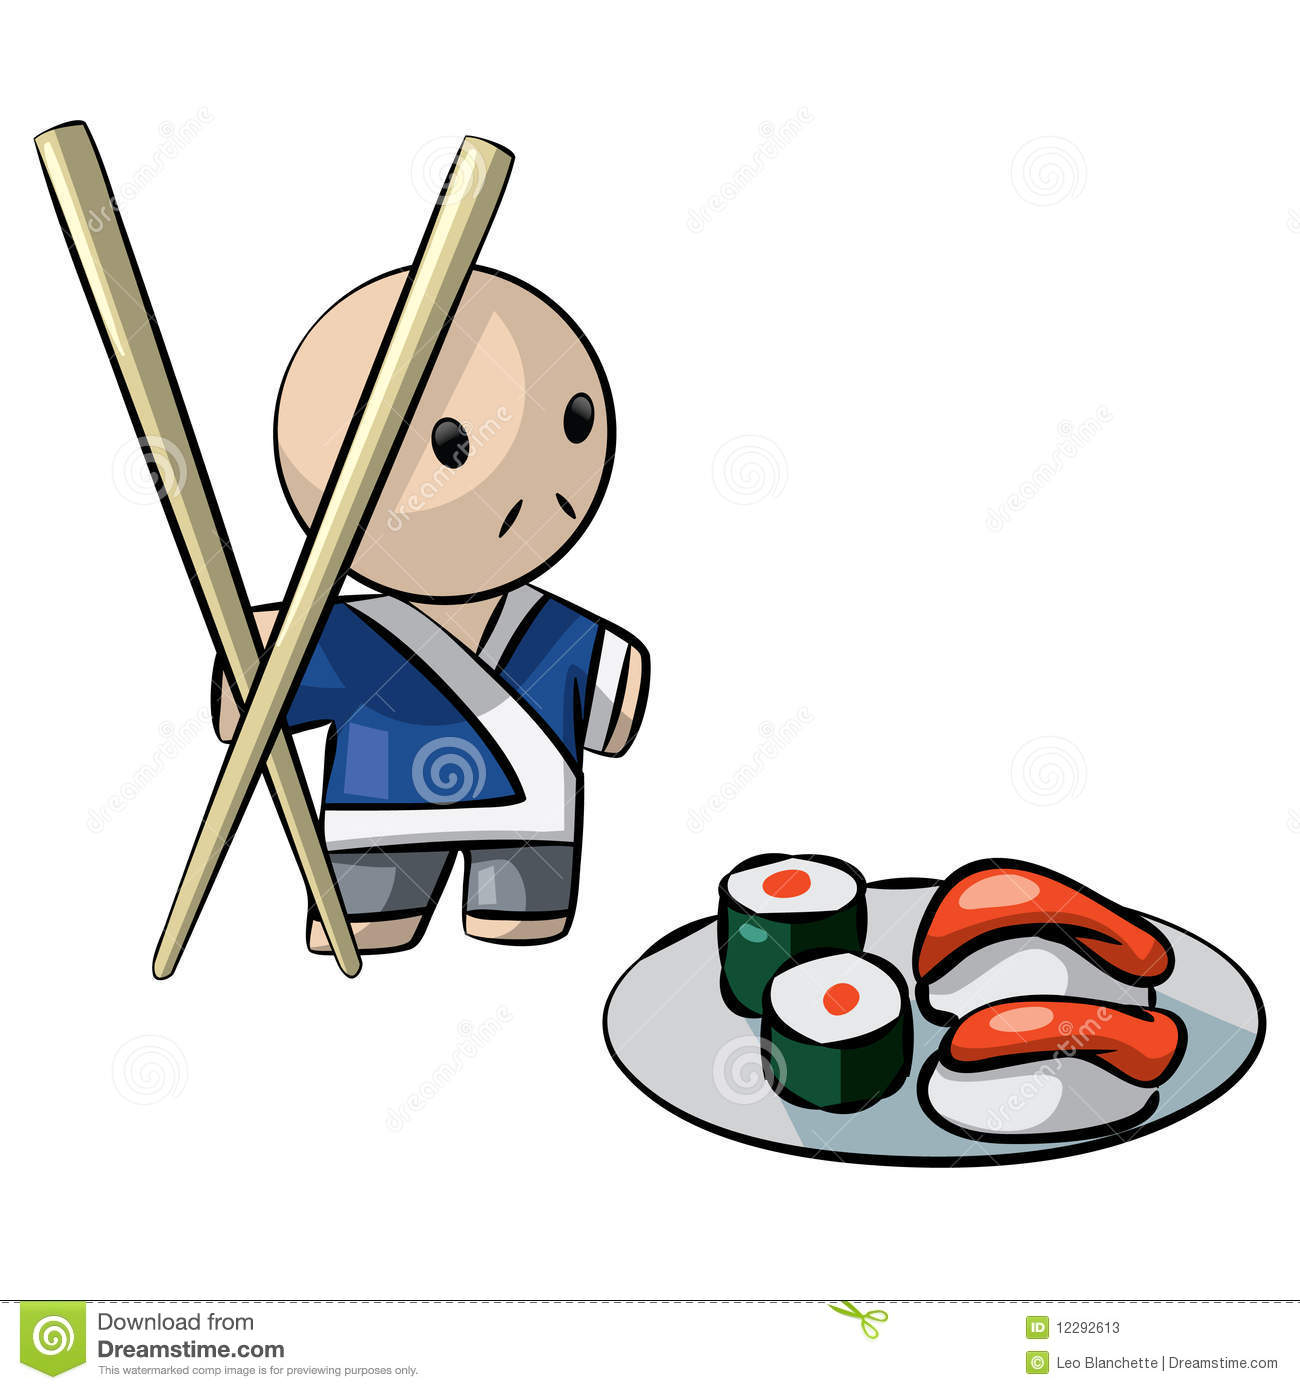 Cute Cartoon Sushi Wallpaper Japanese Chef Serving Sushi With Giant Chopsticks Stock